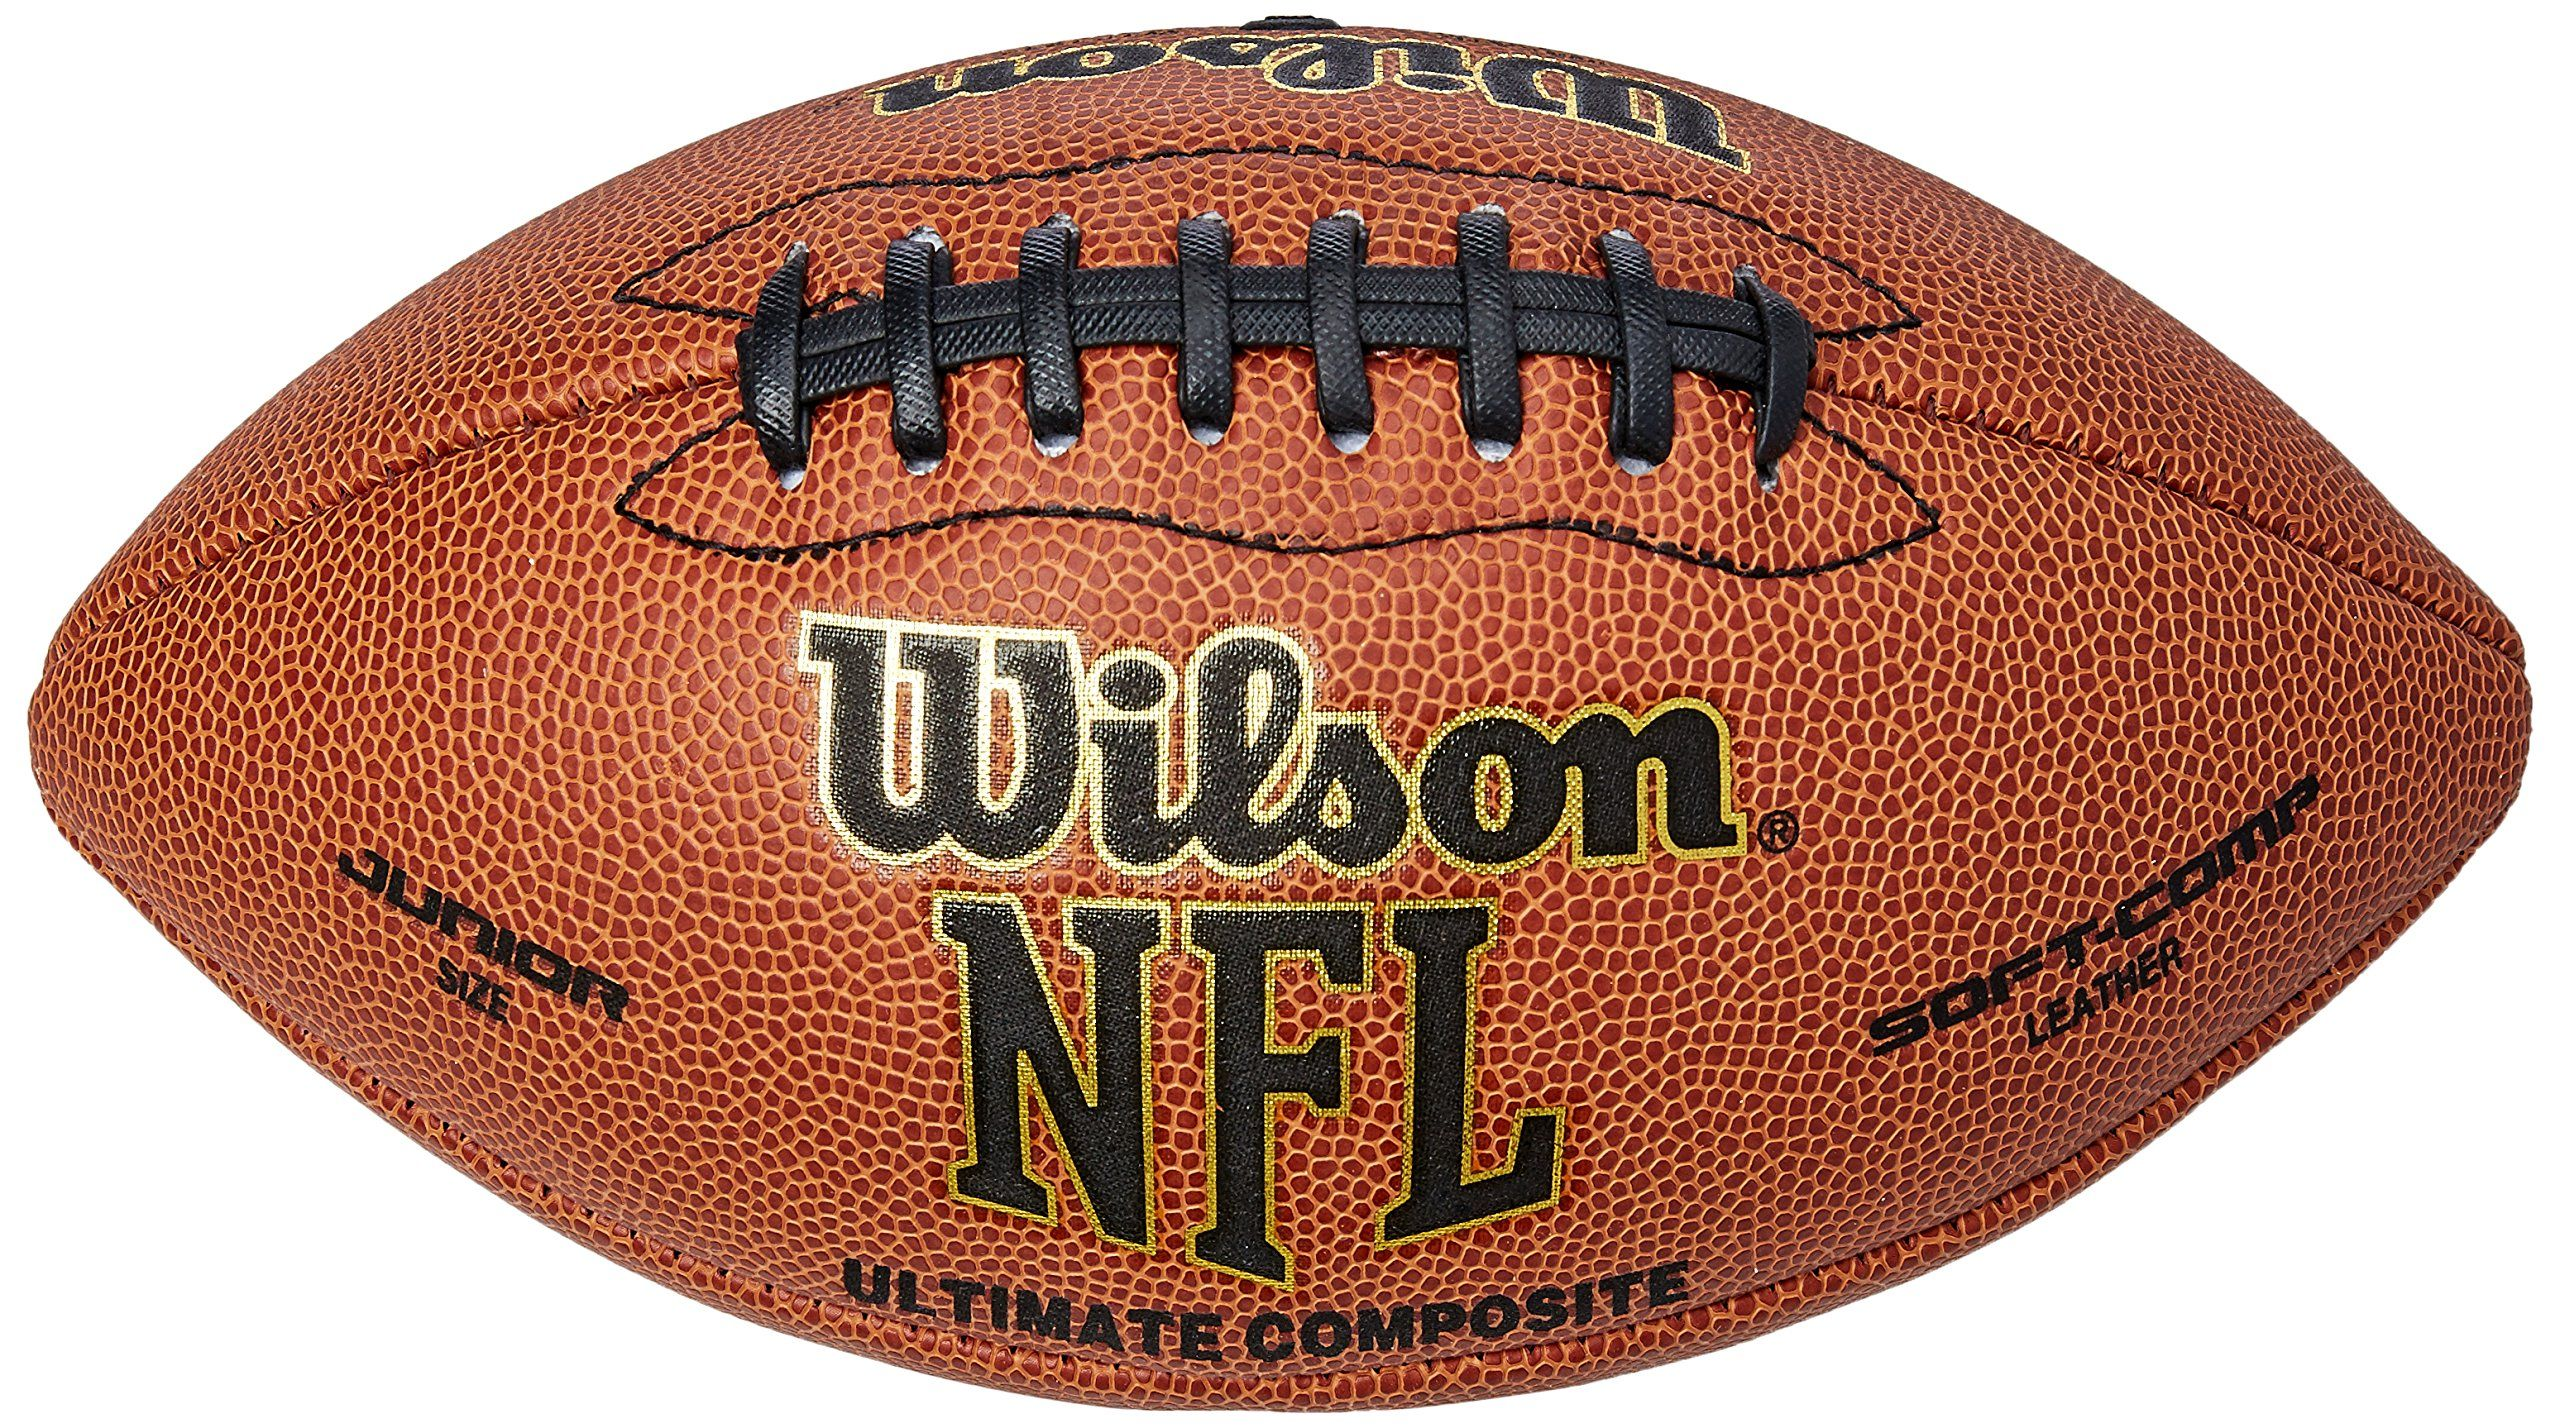 5f5d9a145f2 Wilson Ultimate Composite NFL Junior Football. High-quality composite  football for 9 to 12